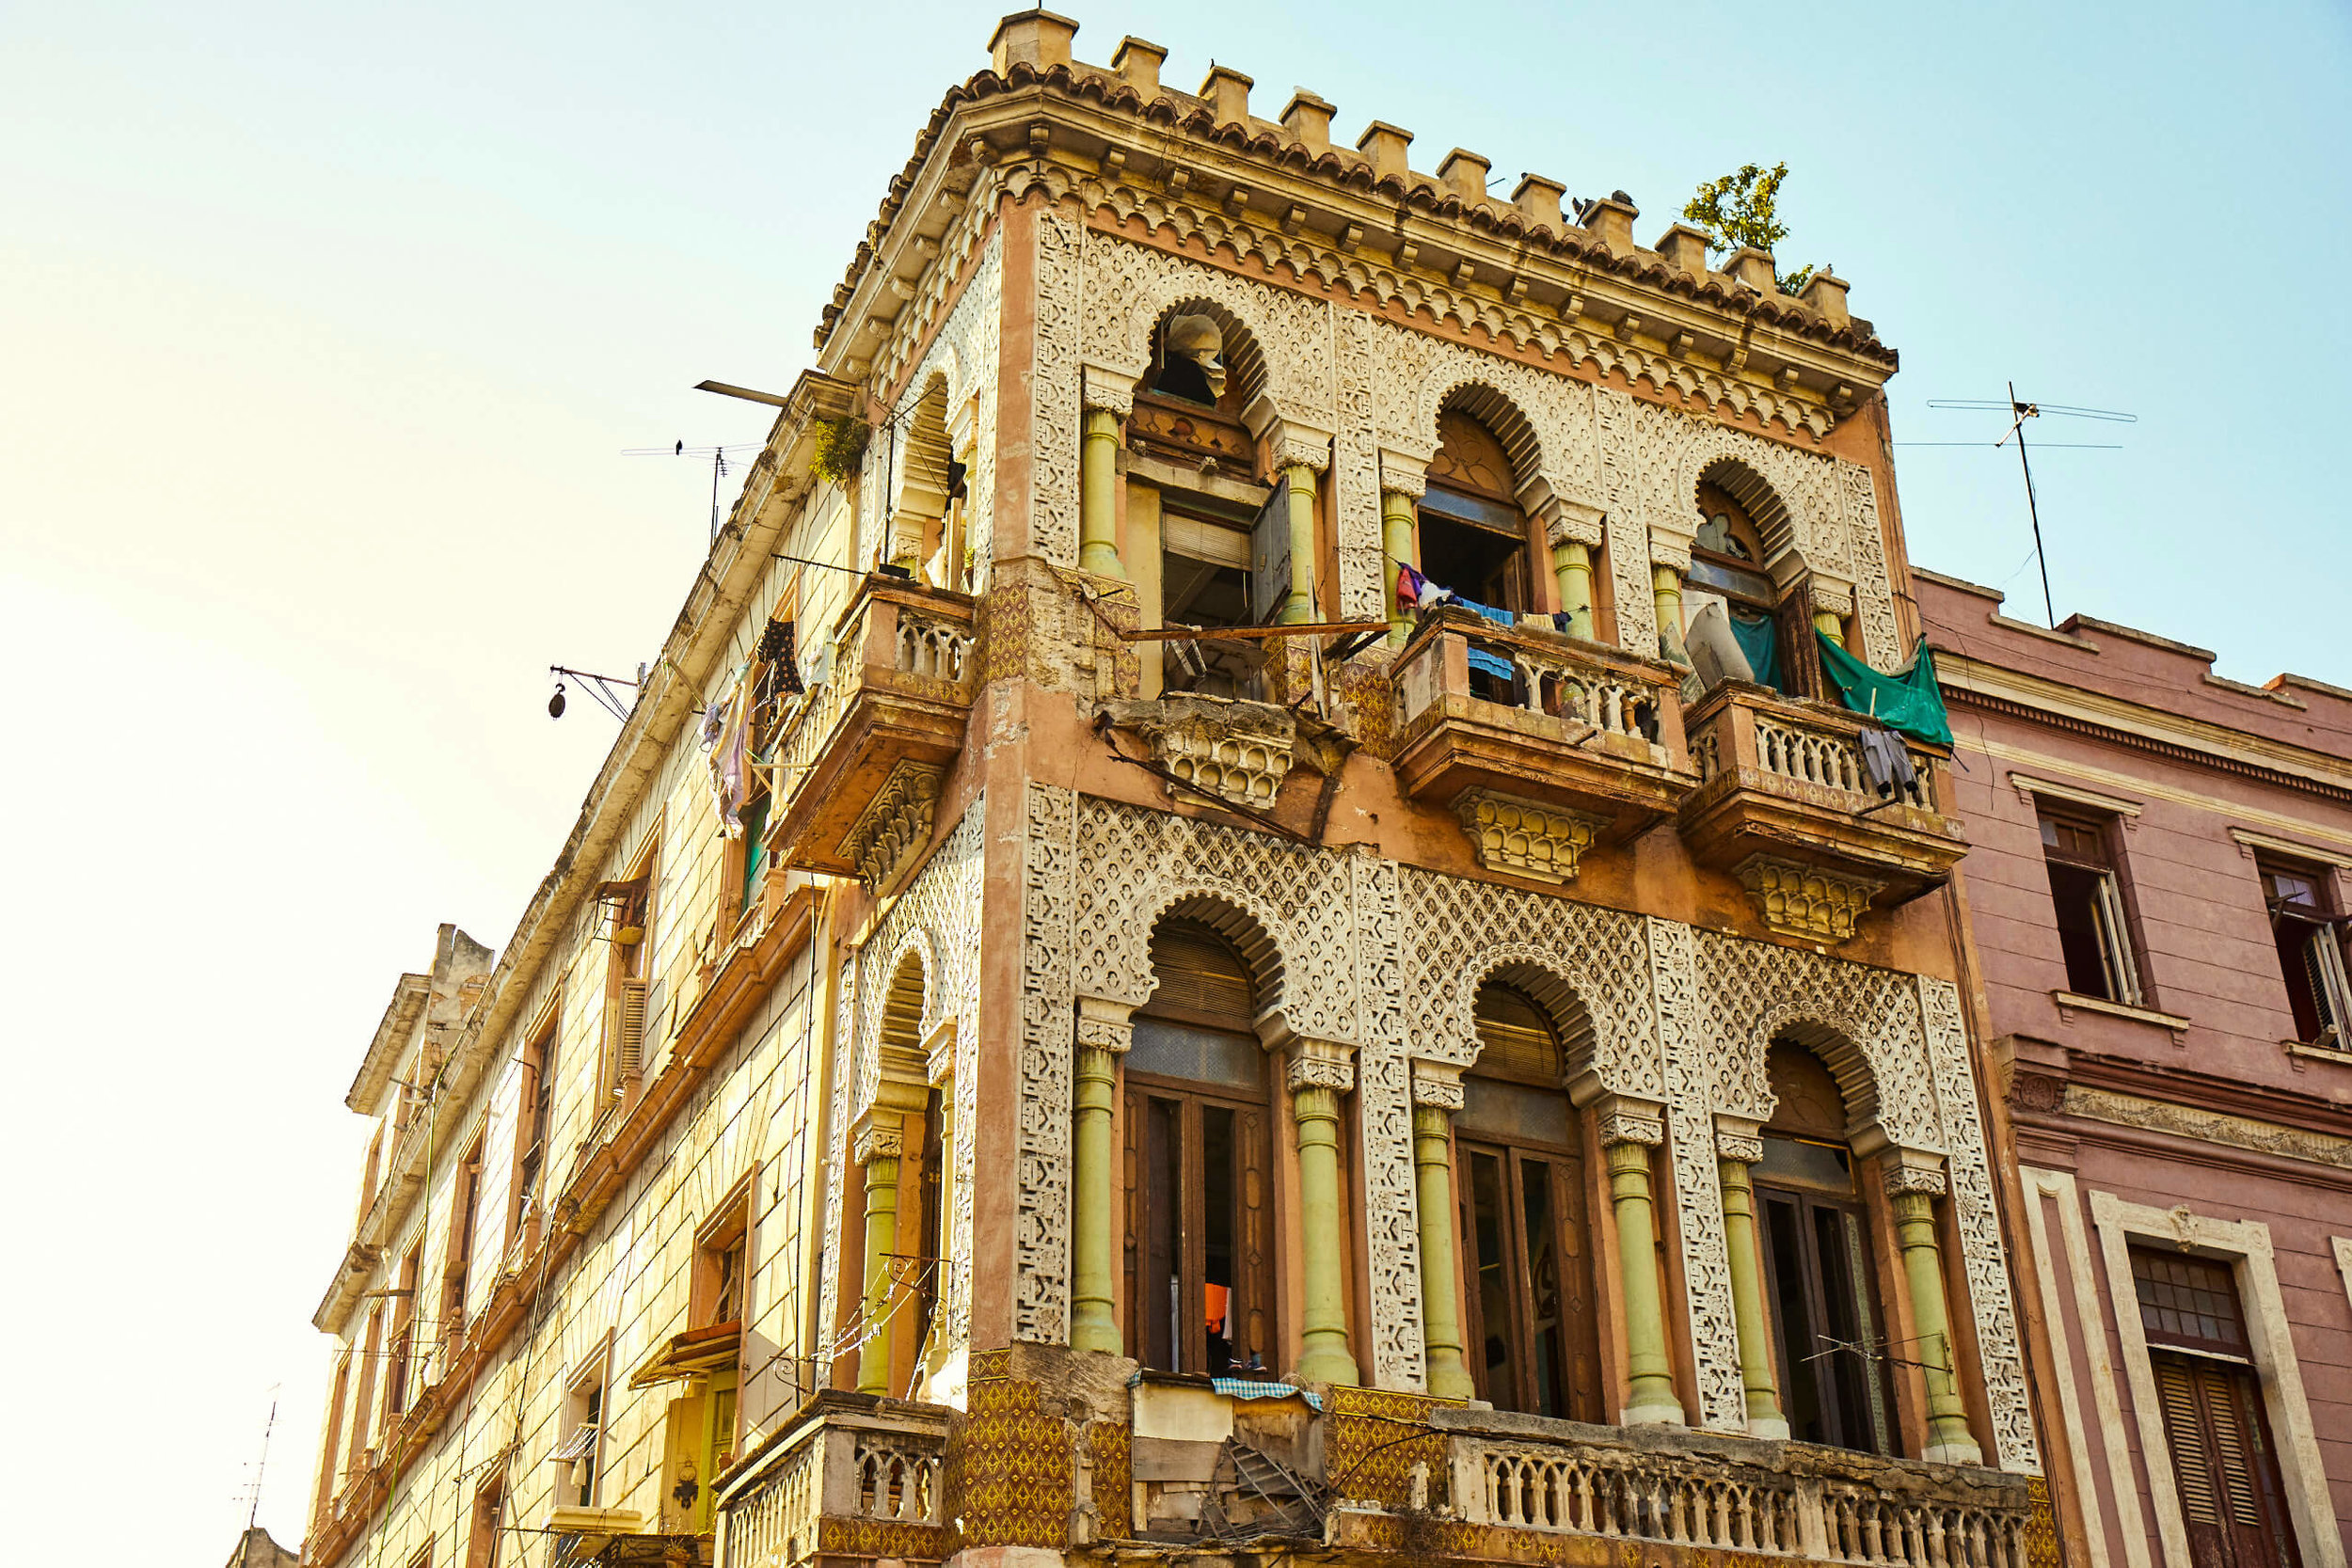 Beautiful residential building in Havana — the city is filled with historical architecture